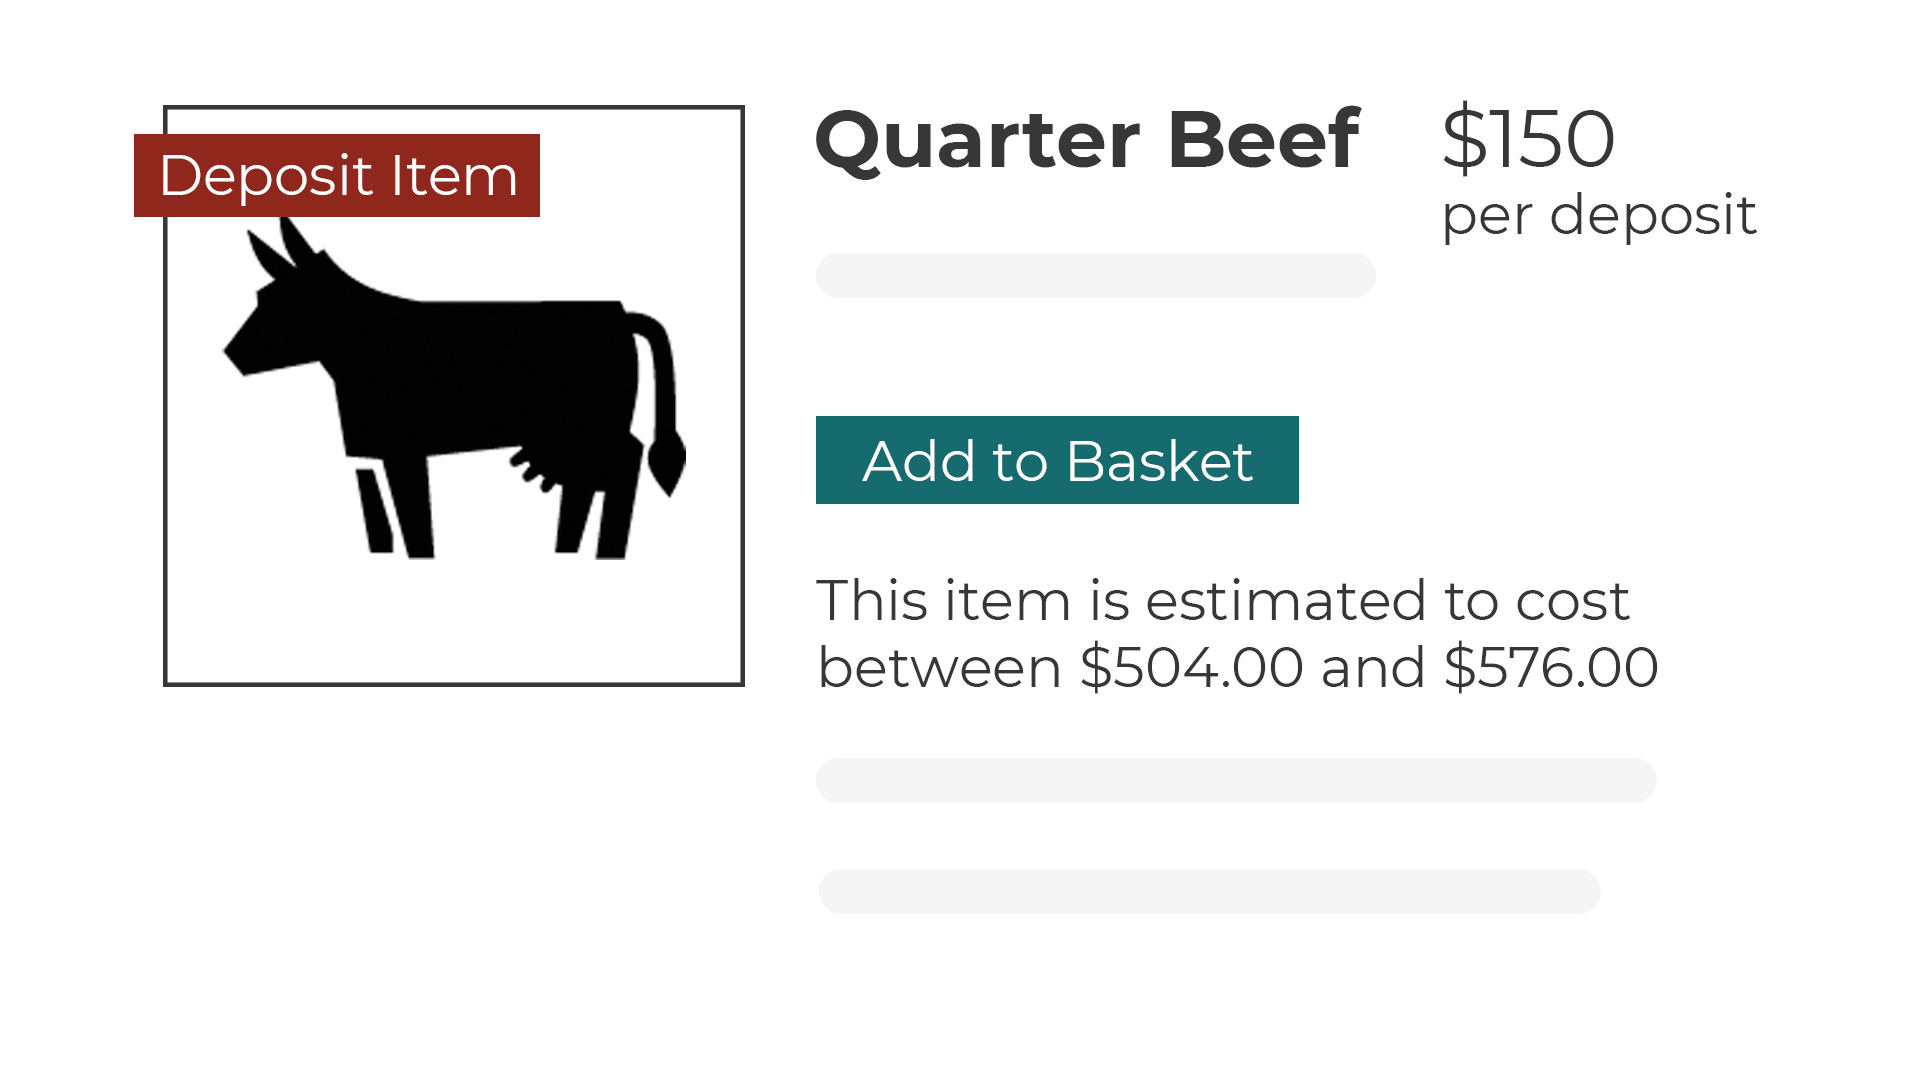 Quarter Beef Abstract screenshot.png